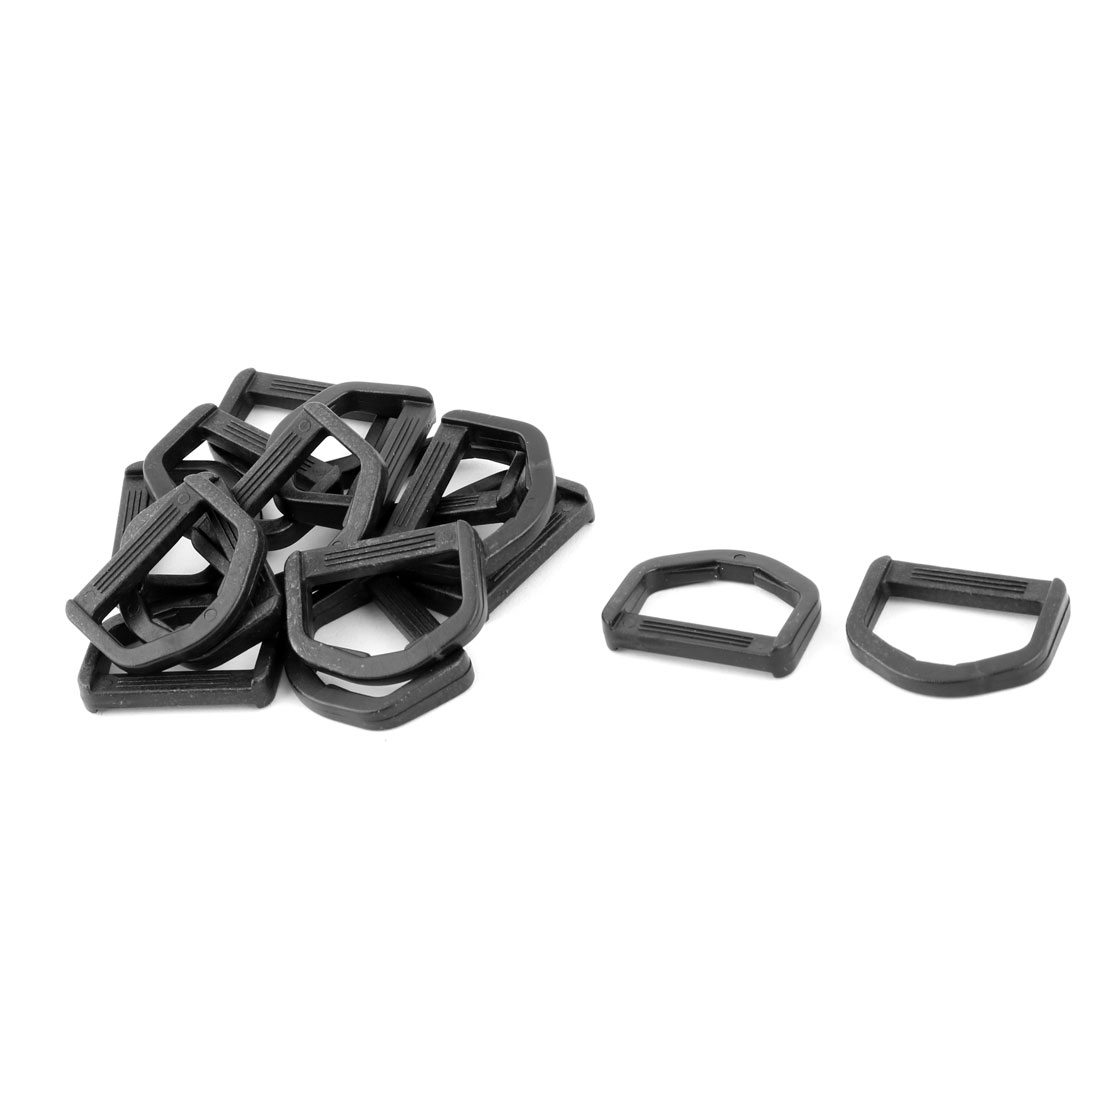 Backpack Plastic D Shaped Webbing Belt Strap Connecting Ring Buckle Black 15pcs